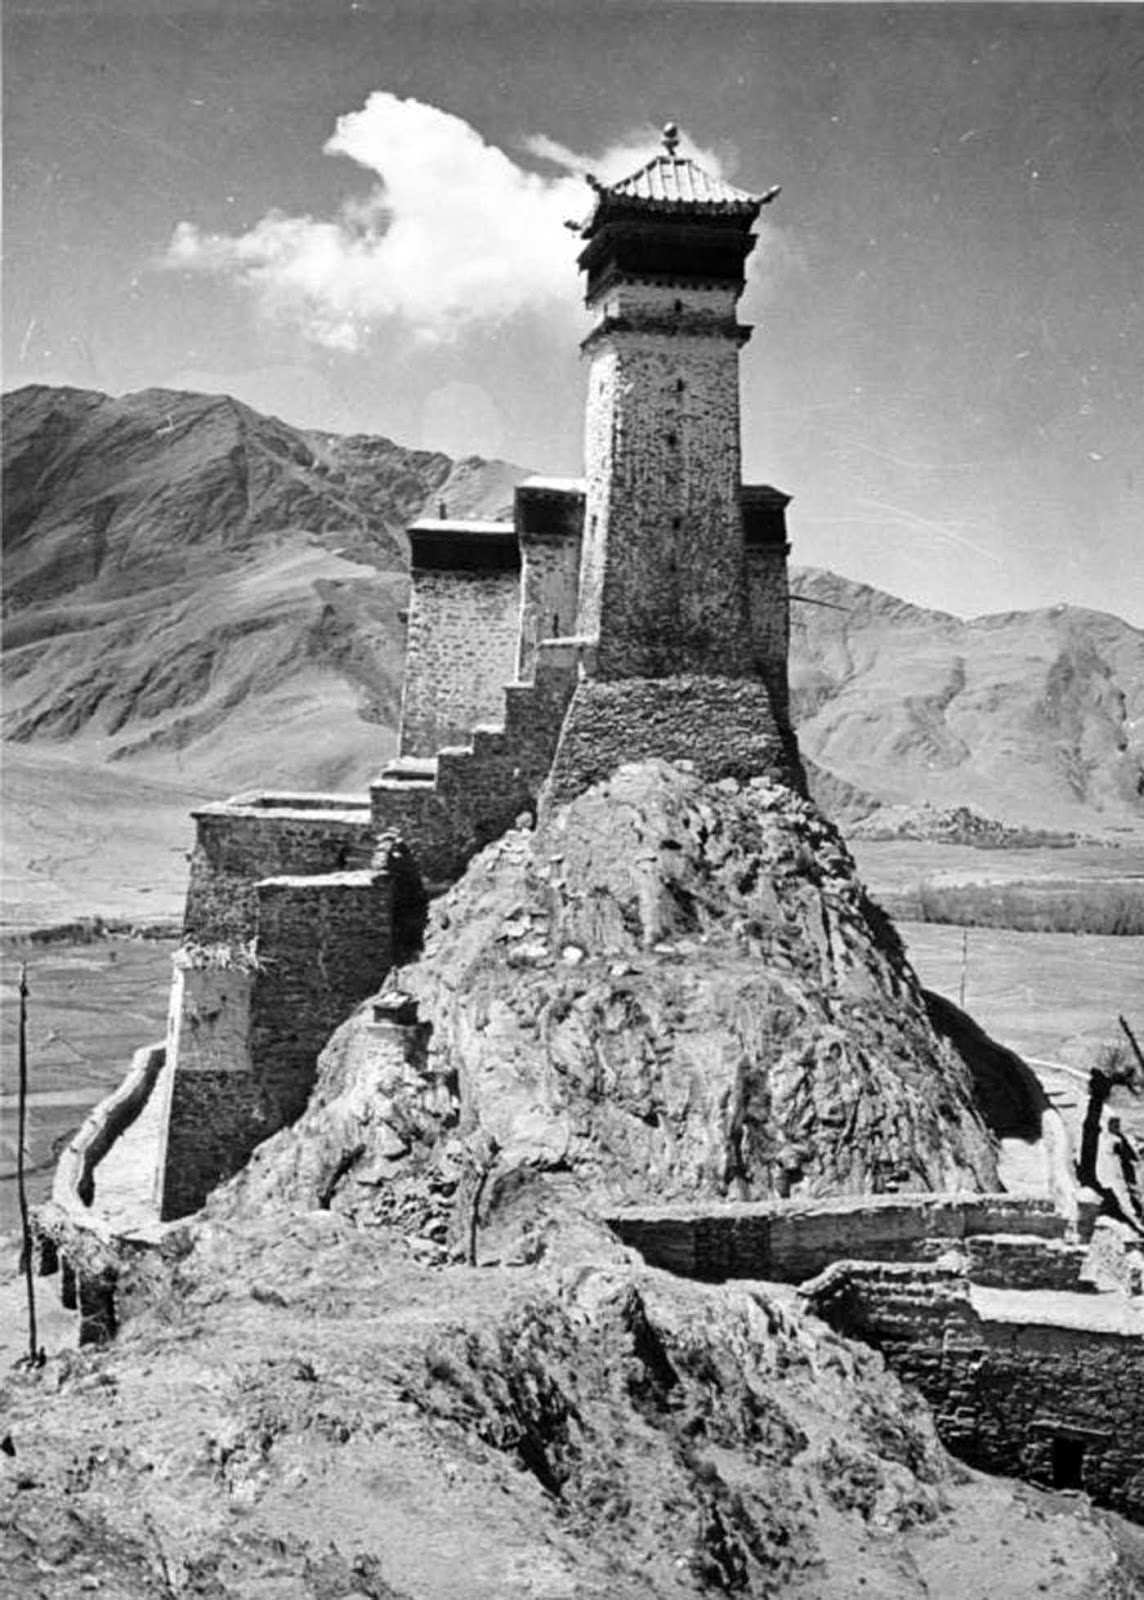 The Yumbulagang fortress as photographed by Ernst Krause in 1938.